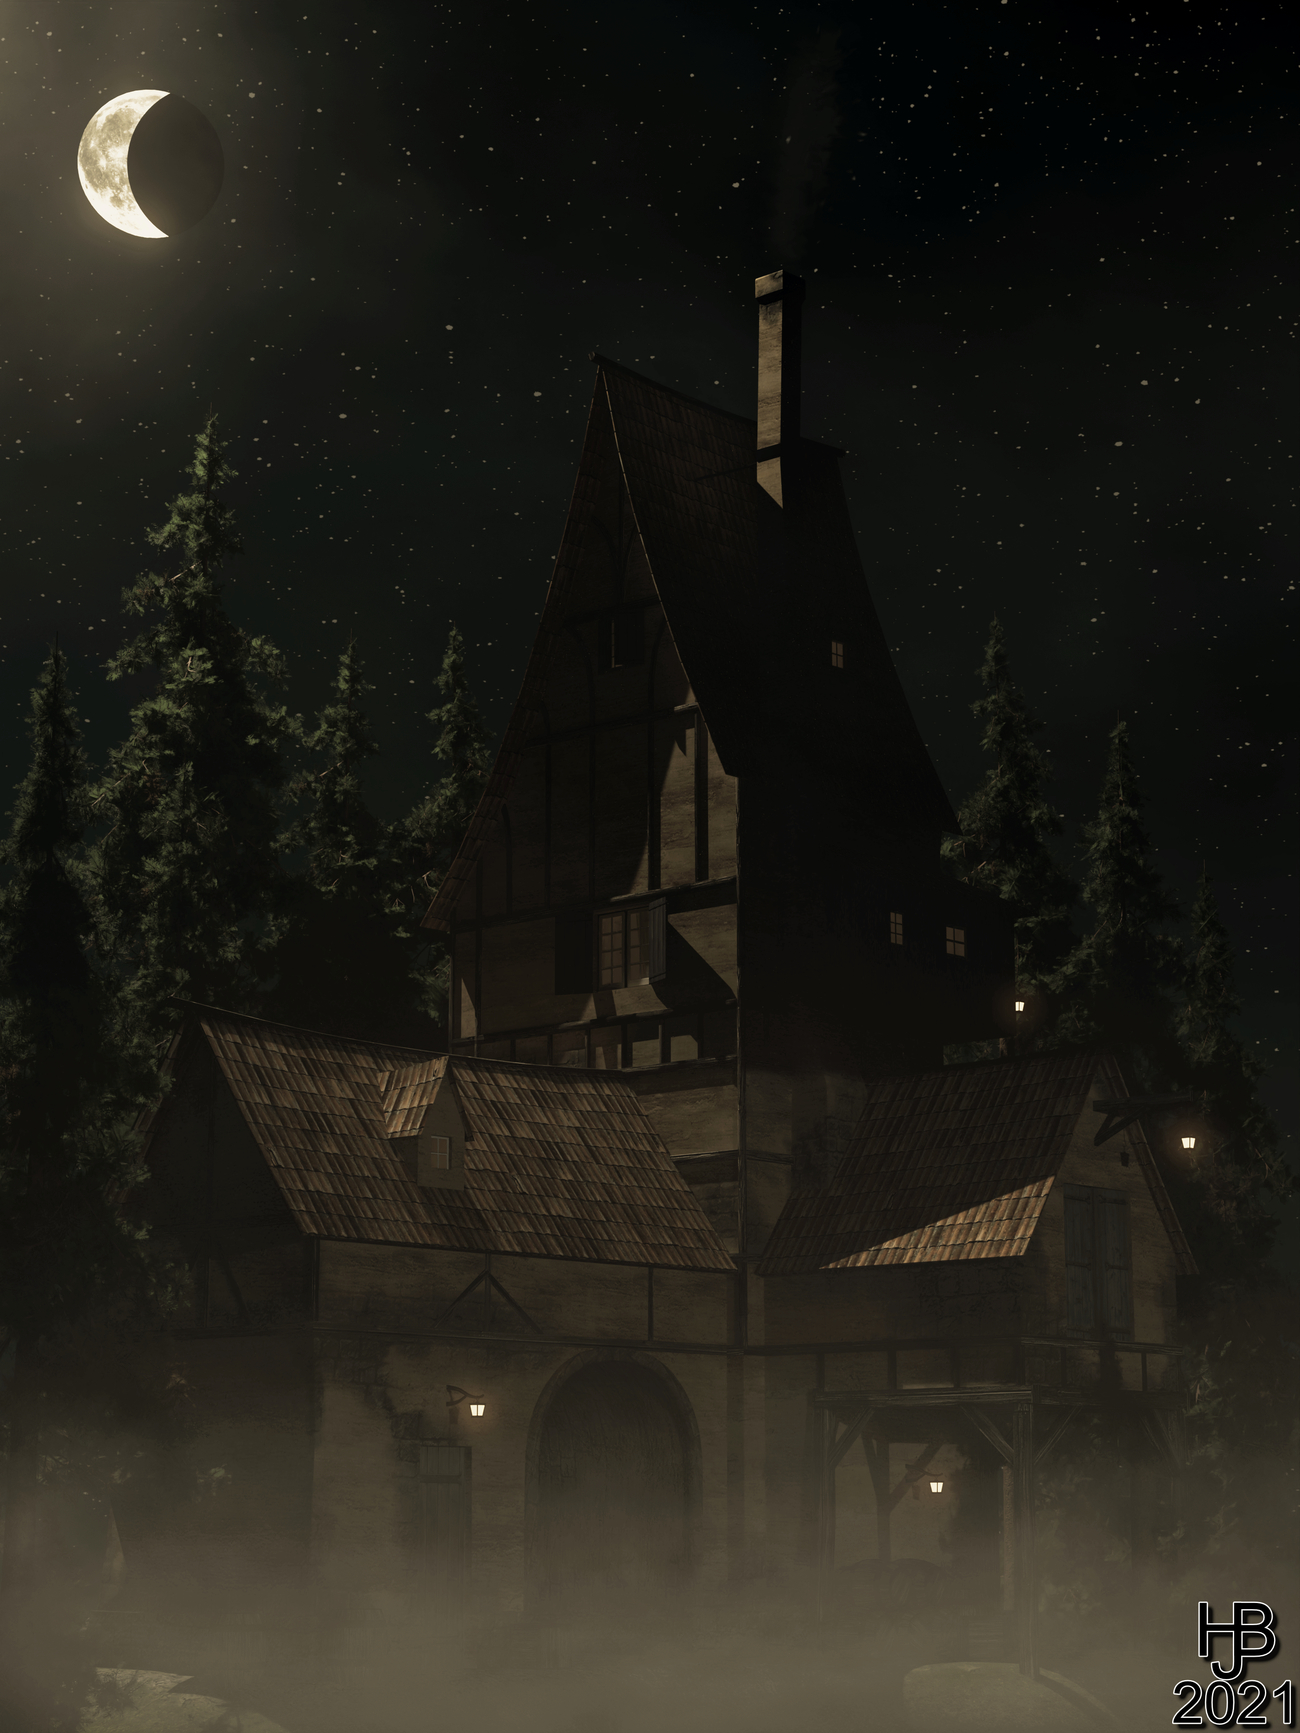 The creepy house in the forest by Hajoba